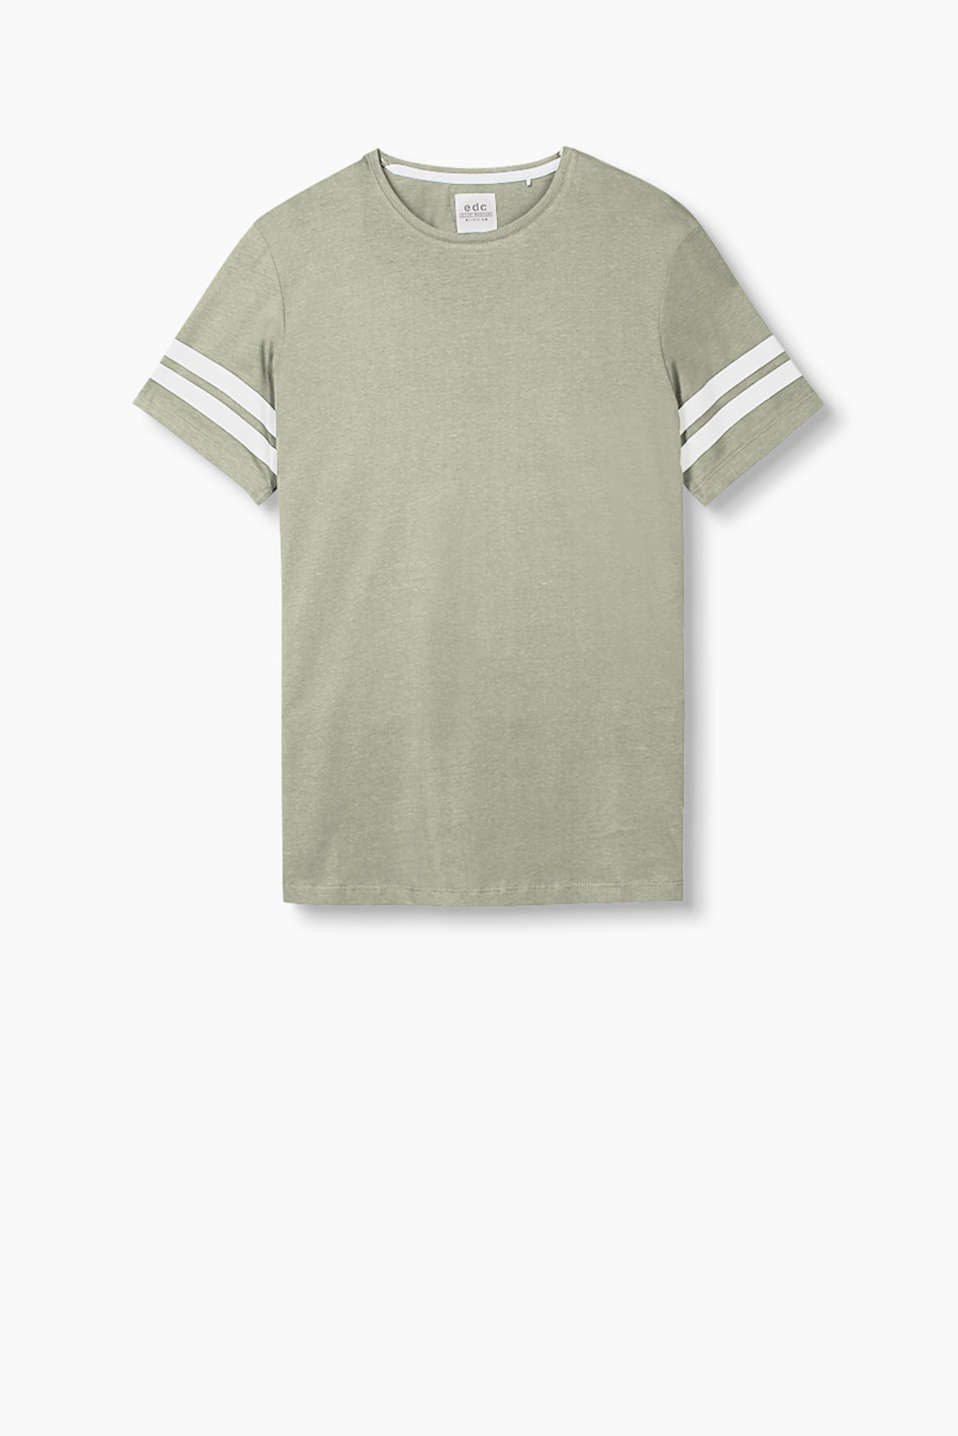 Pure cotton T-shirt with a distinctive print on the sleeves